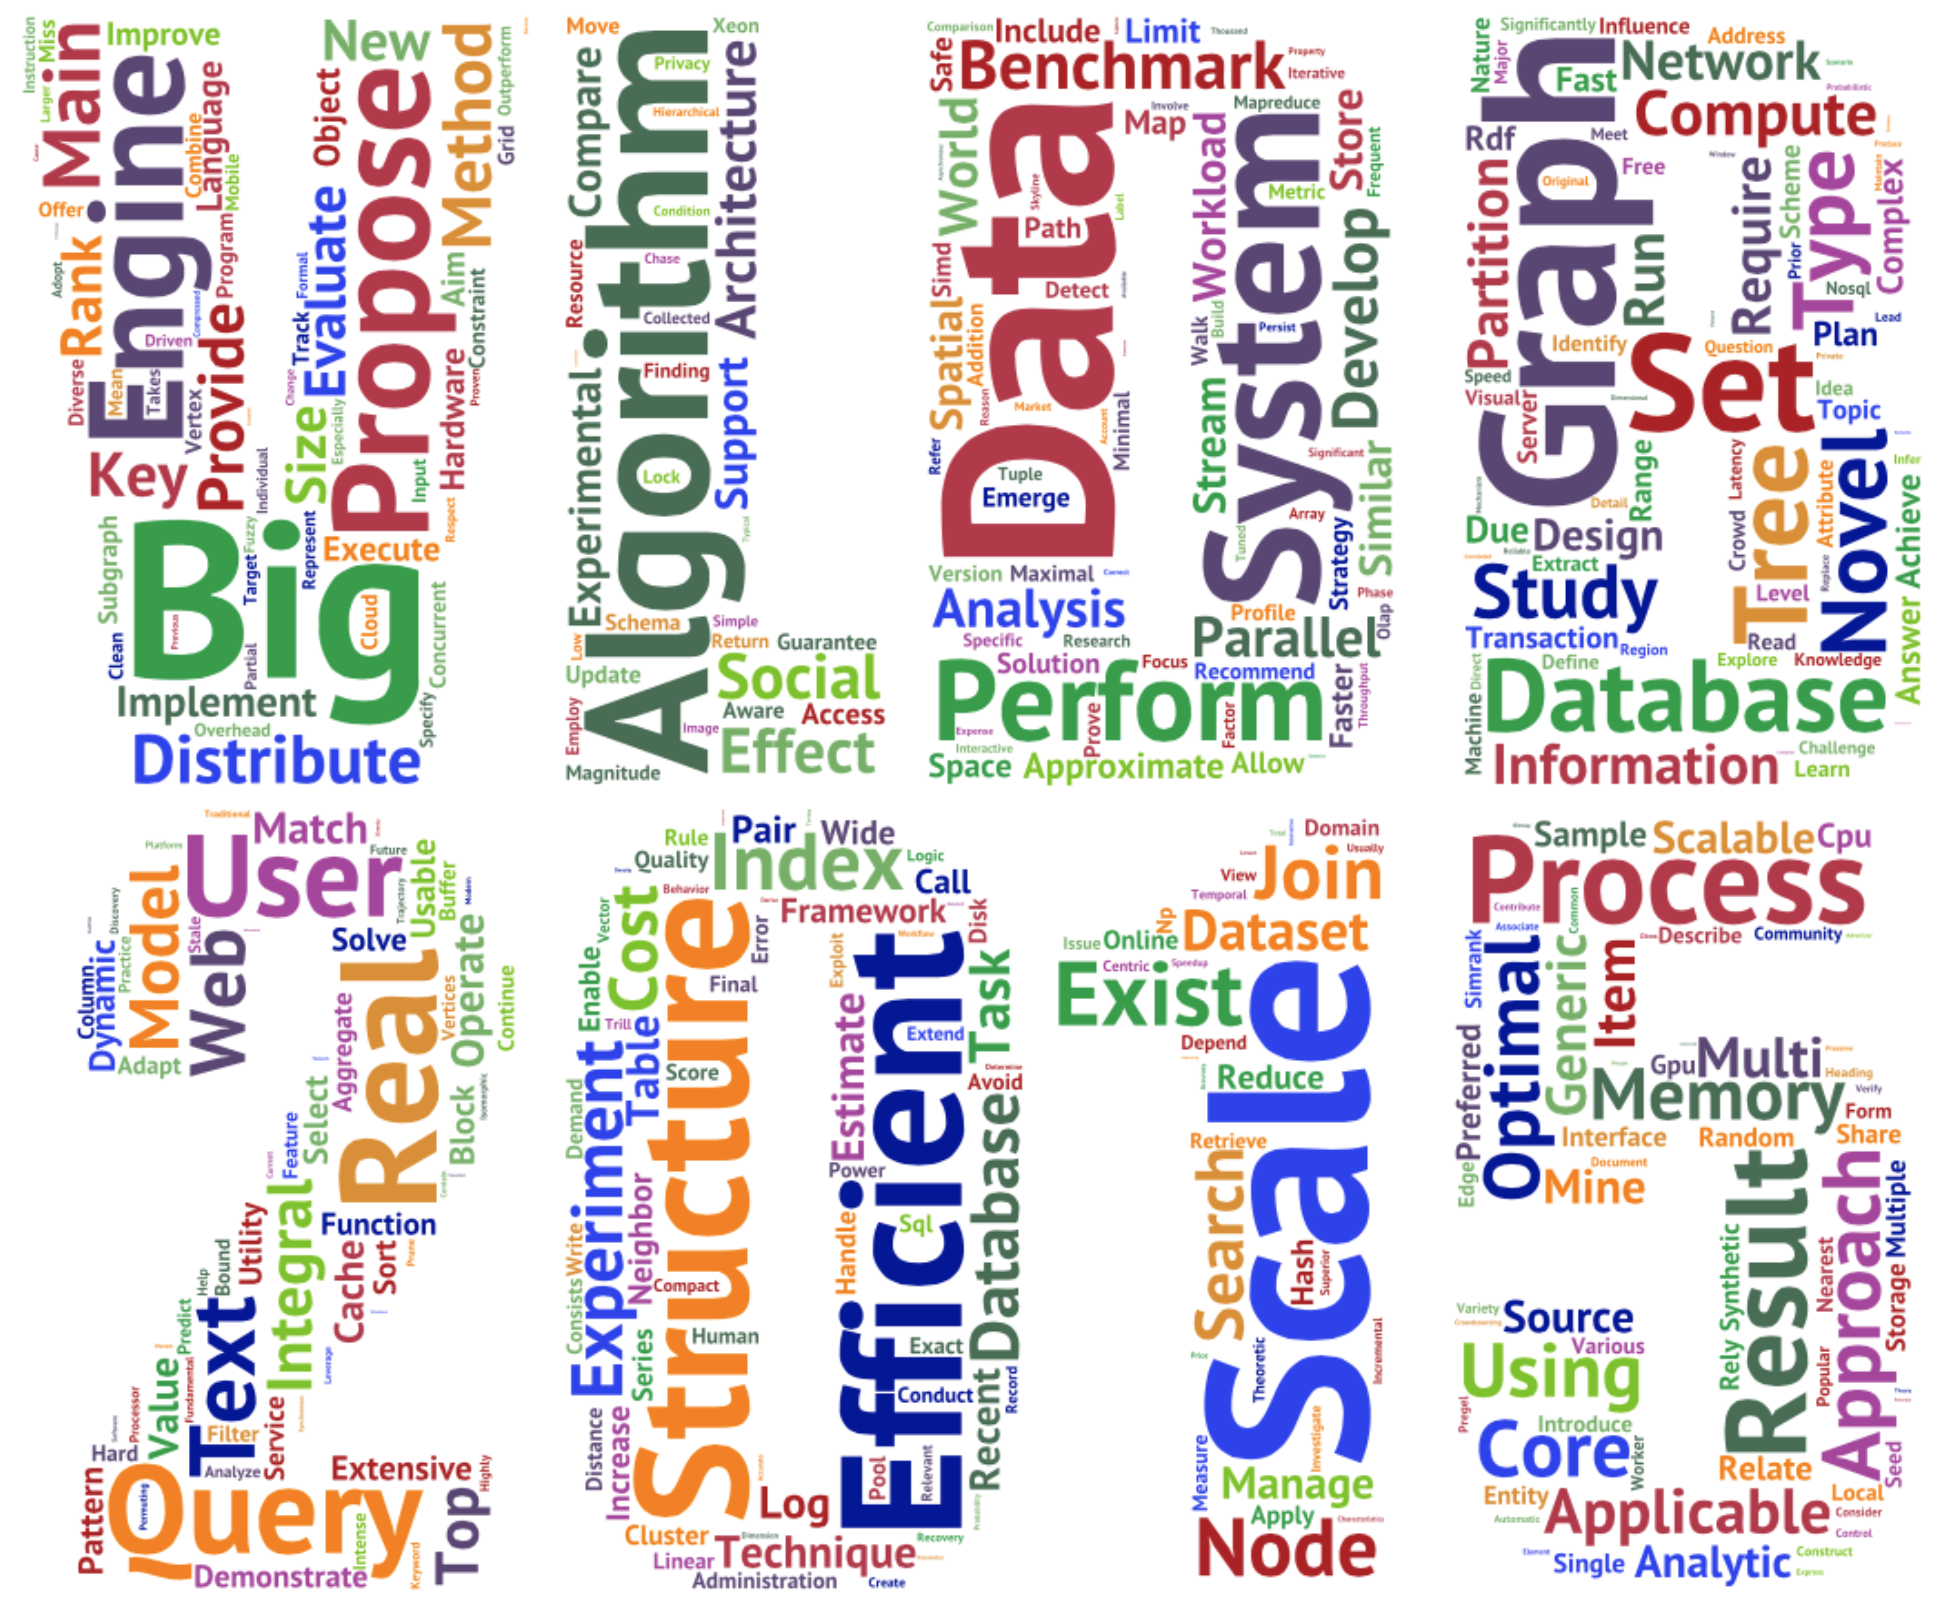 41st International Conference on Very Large Data Bases   VLDB 2015